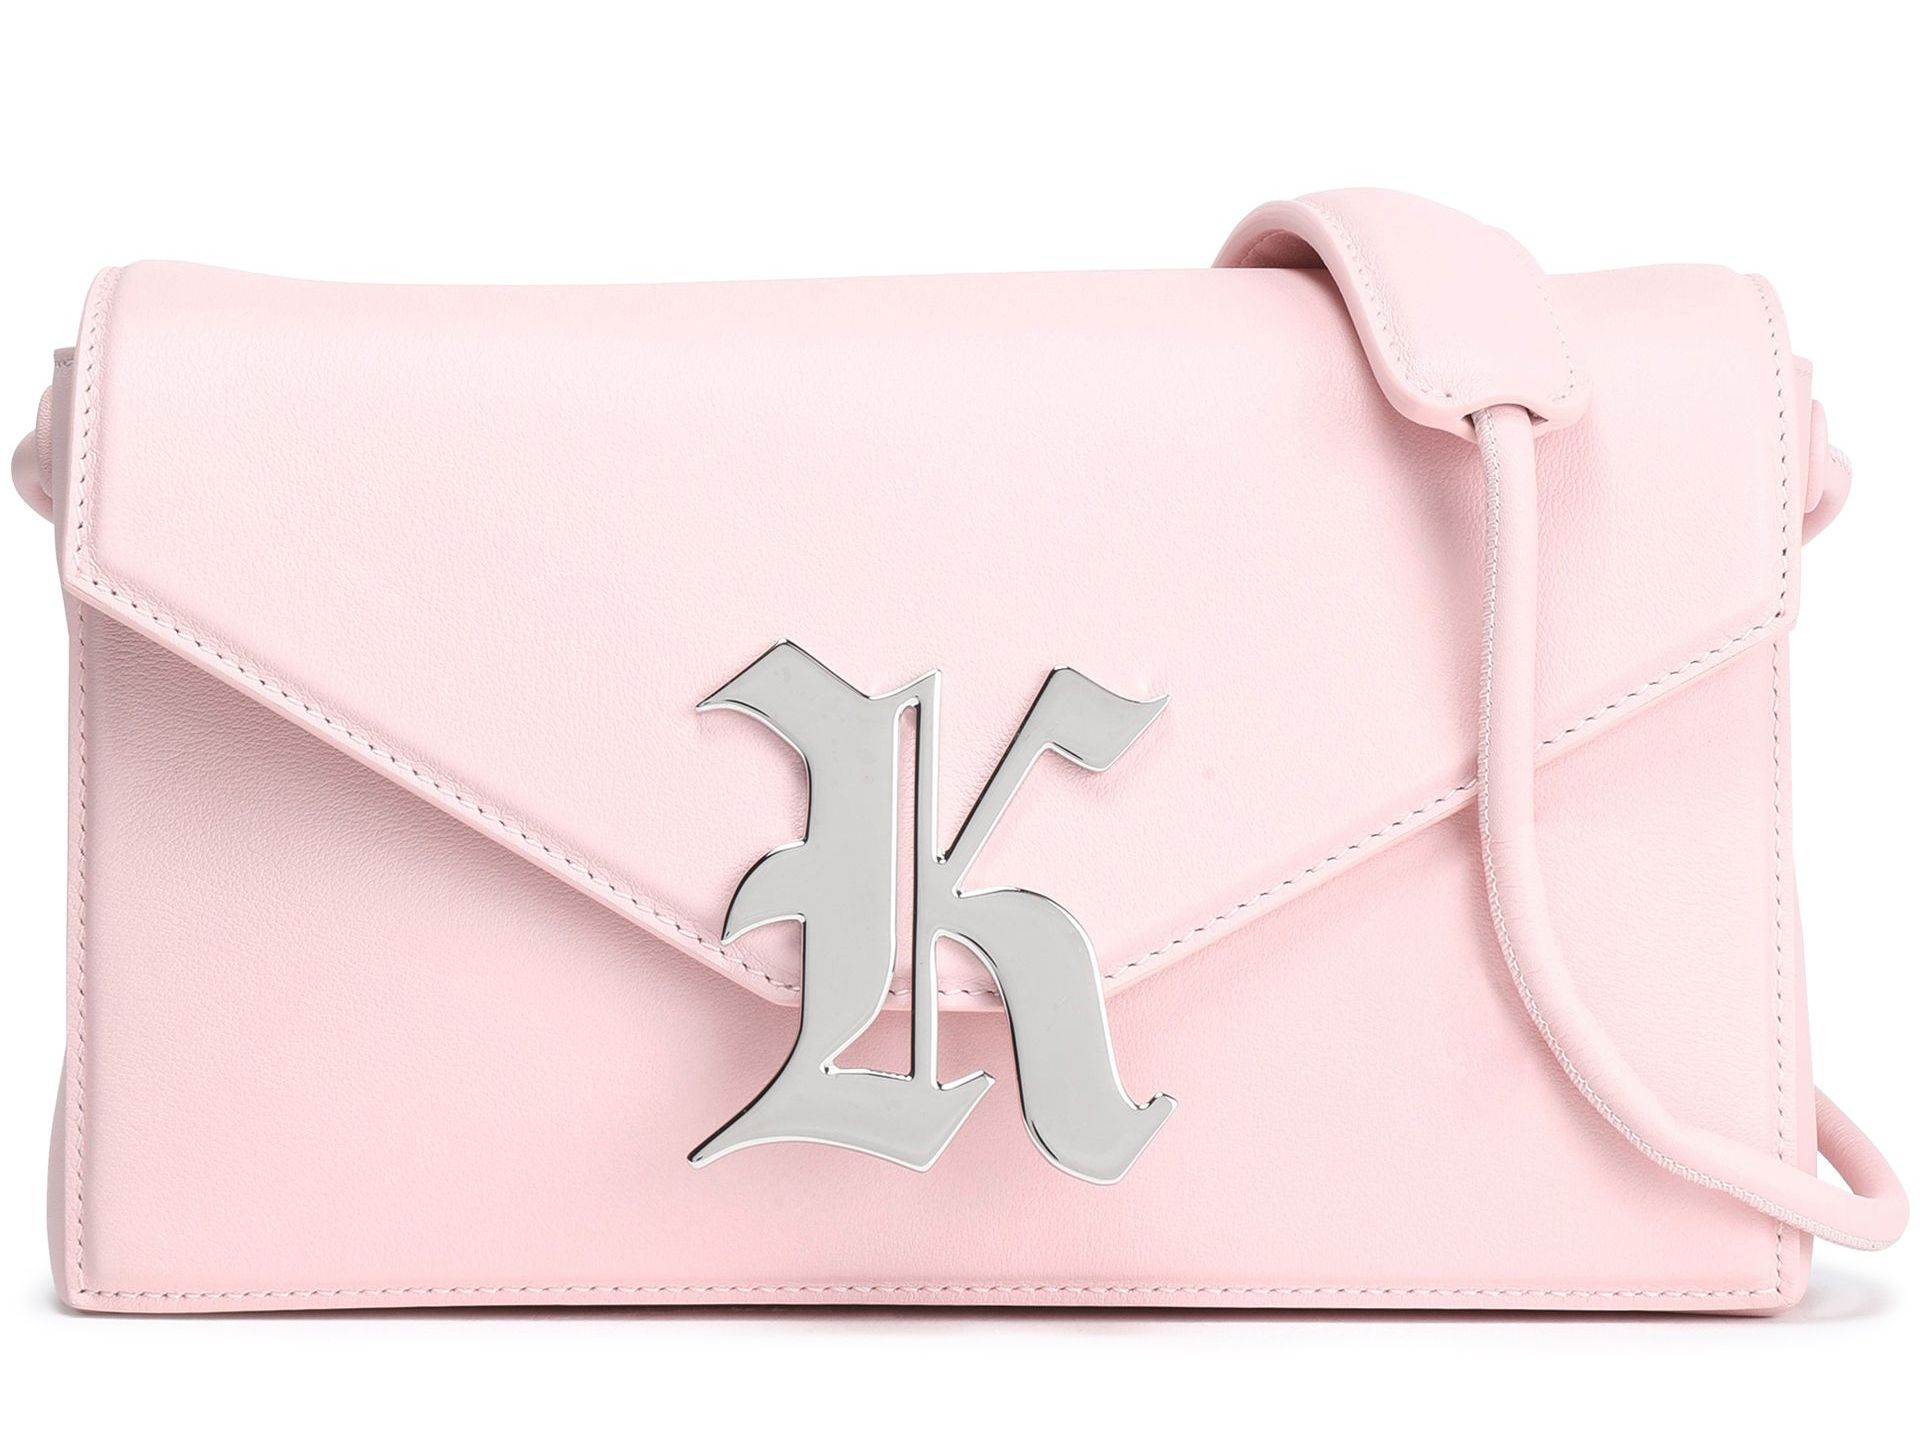 christopher-kane-baby-pink-leather-shoulder-bag-the-outnet-sale